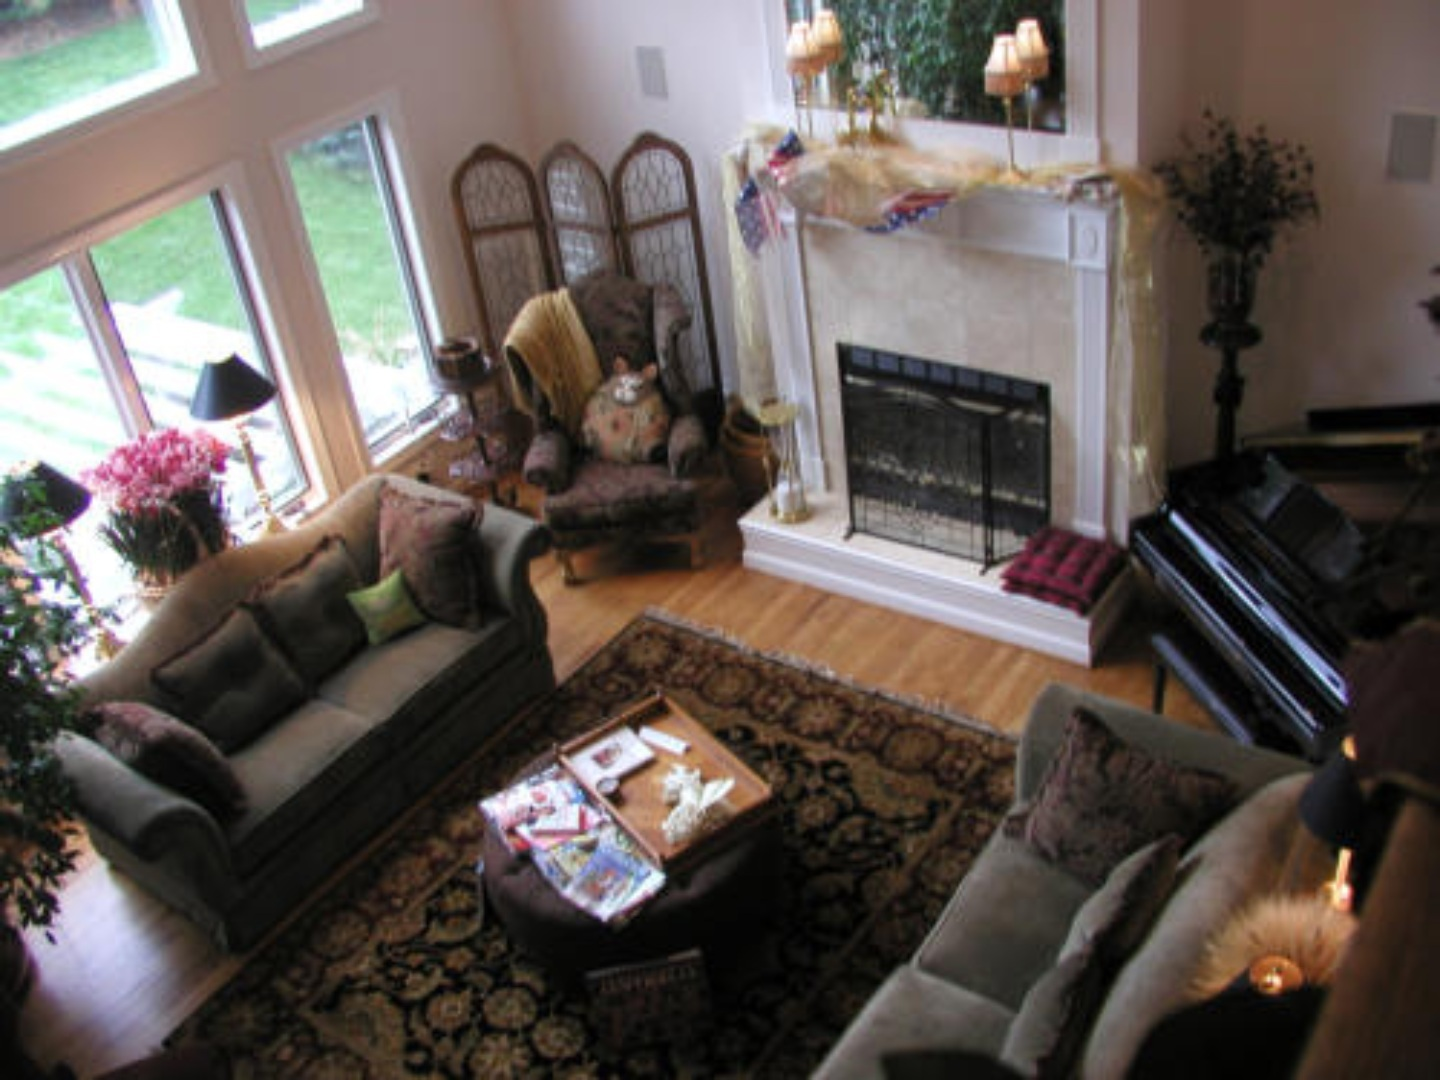 A living room filled with furniture and a fire place at Canterbury Chateau Bed & Breakfast.